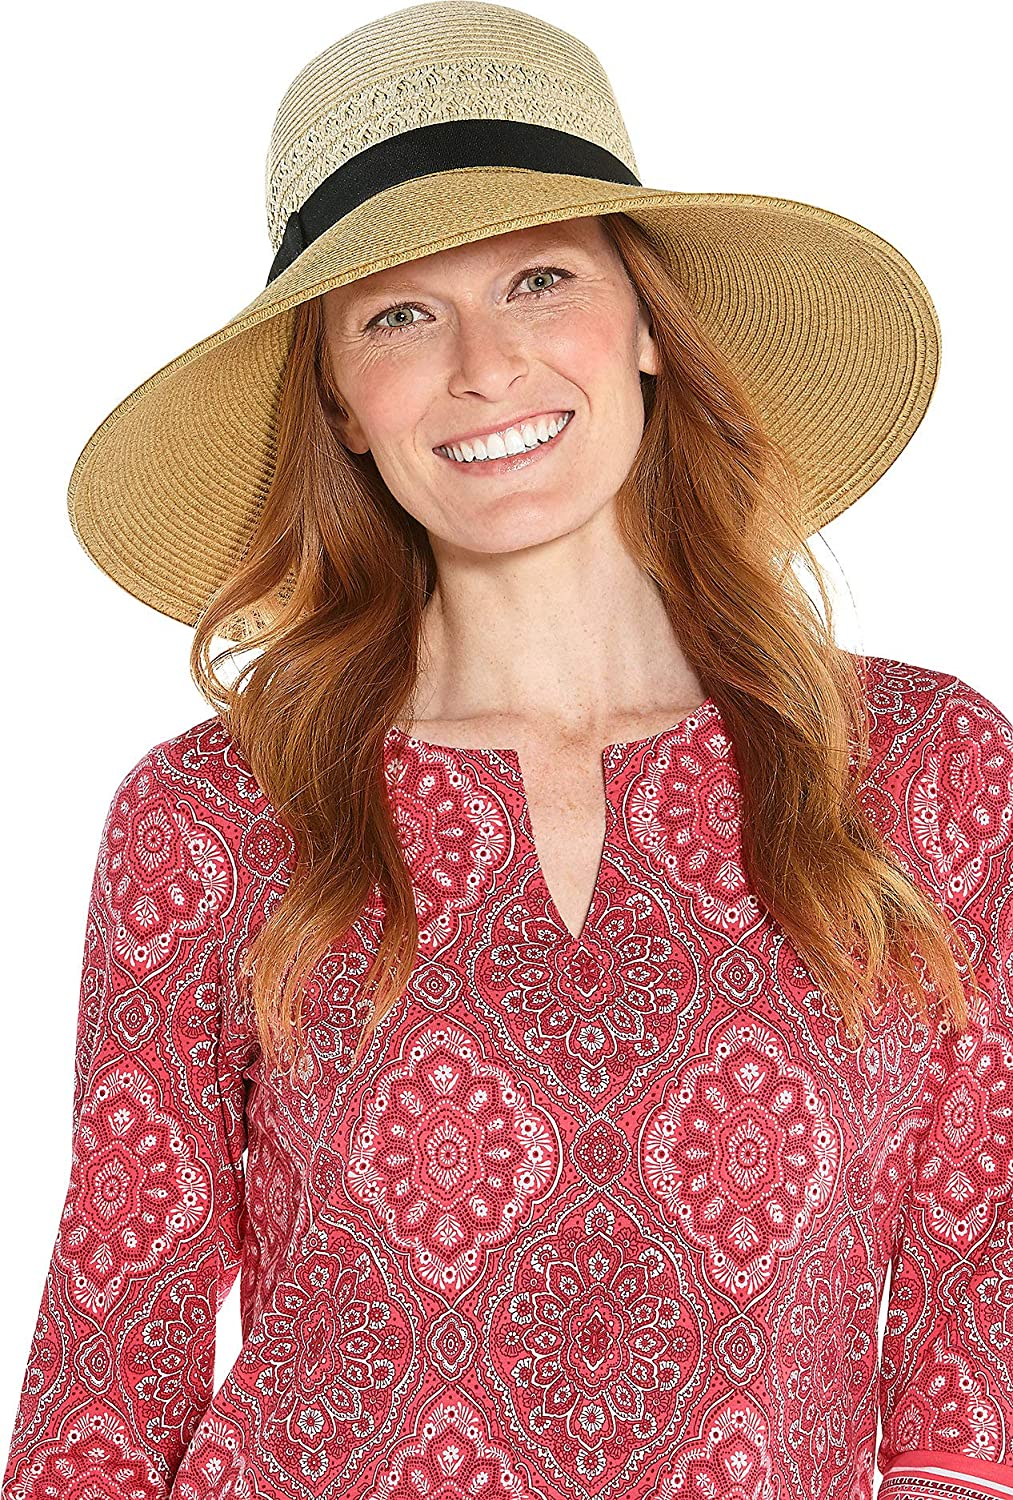 50e6fb15b9d Coolibar UPF 50+ Women s Shannon Wide Brim Beach Hat - Sun Protective (One  Size- Natural Colorblock) at Amazon Women s Clothing store